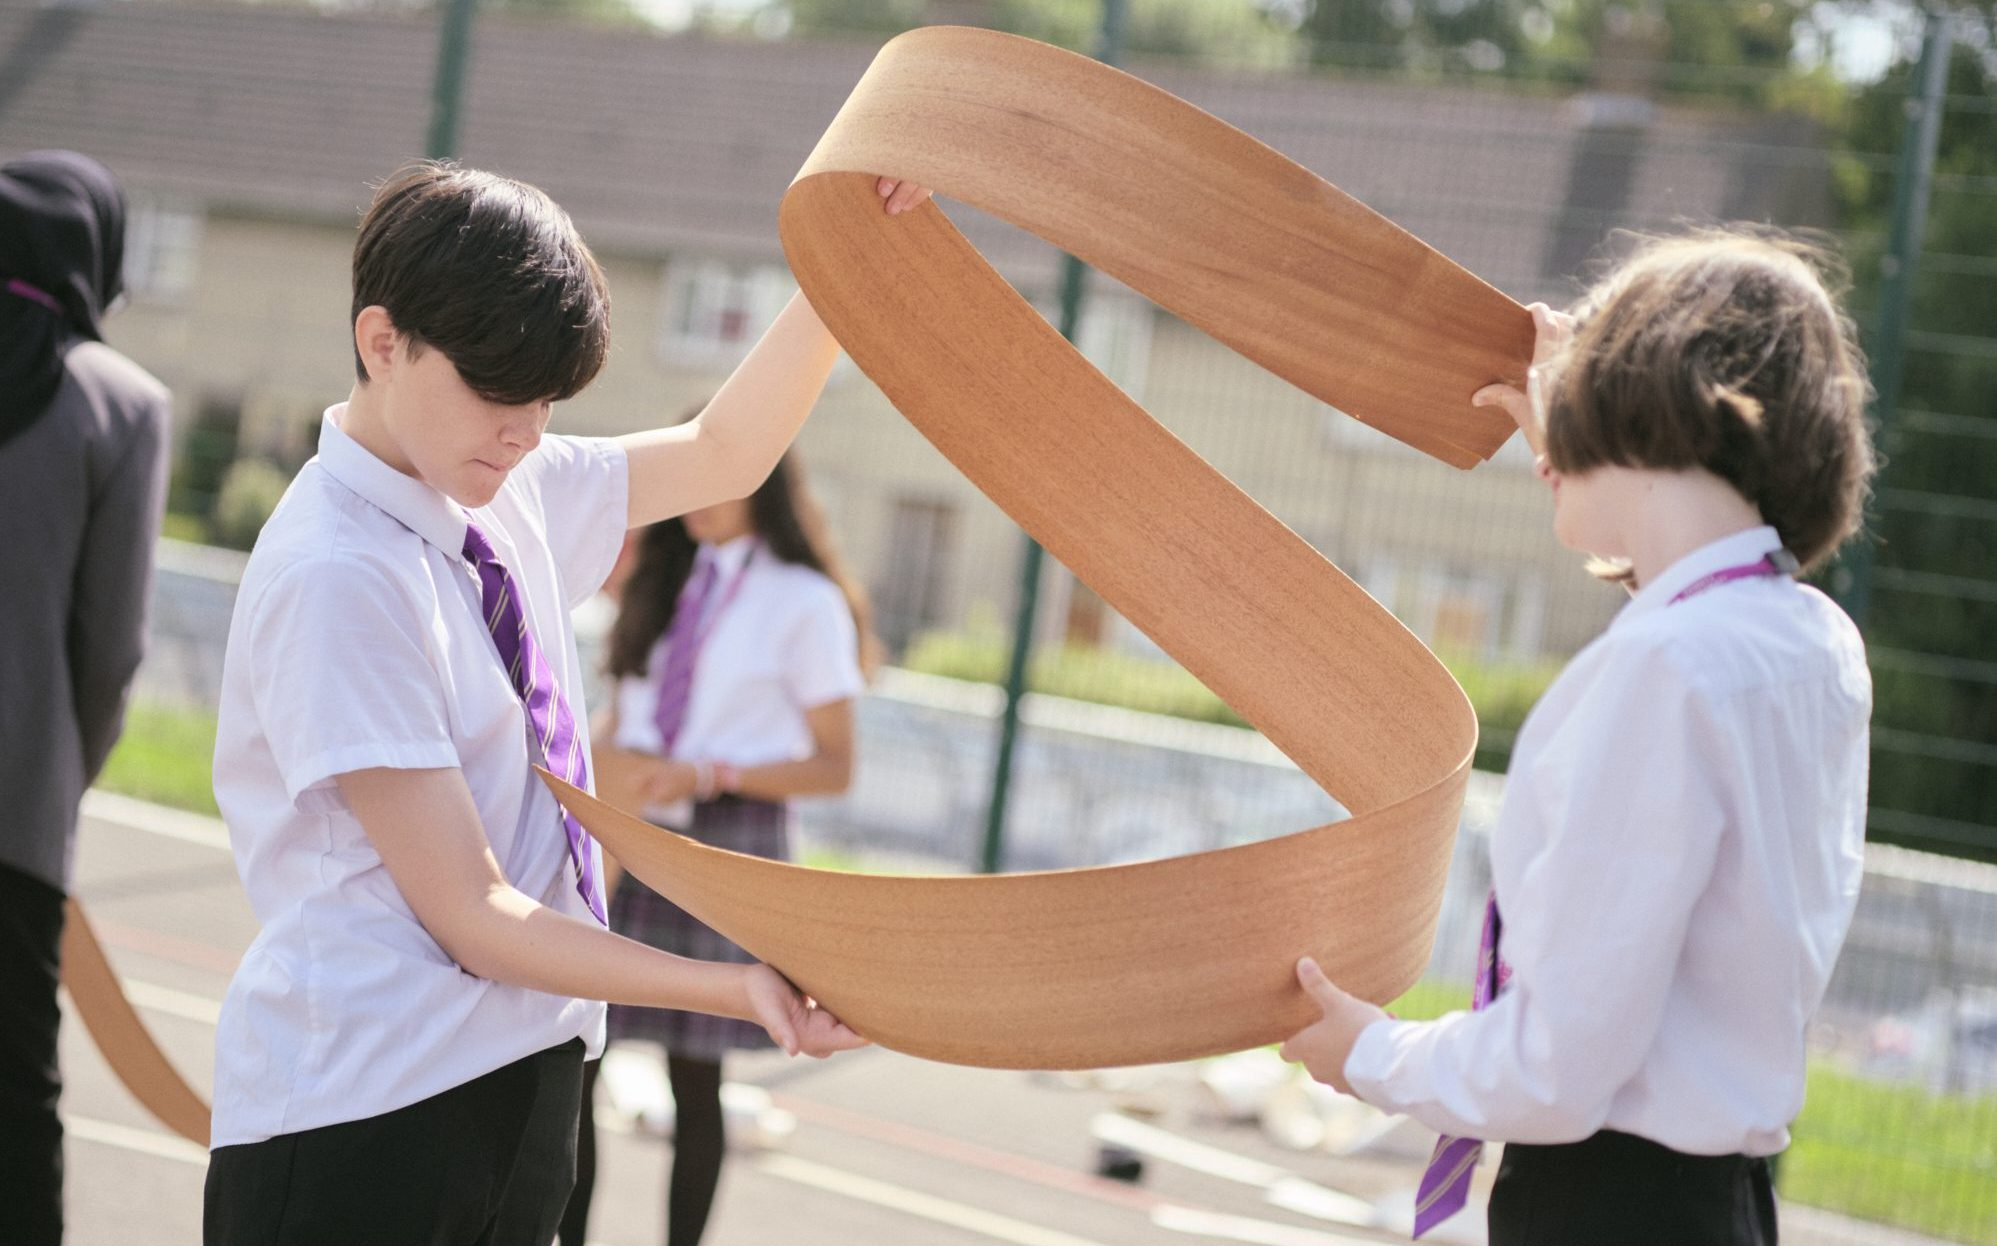 Two school pupils working with thin strip of wood to create helix shape